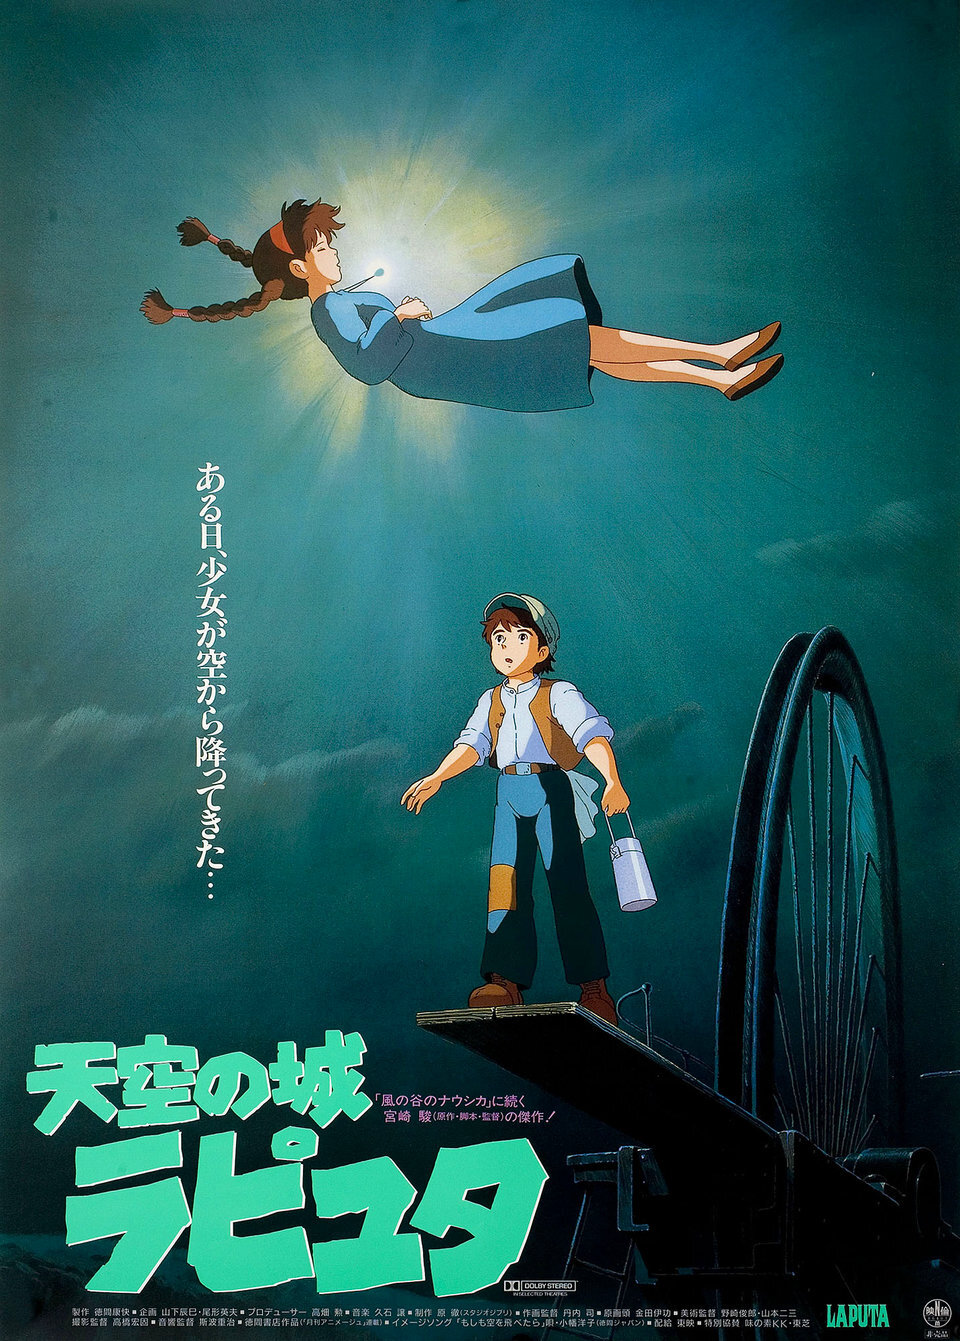 castle in the sky poster.jpg